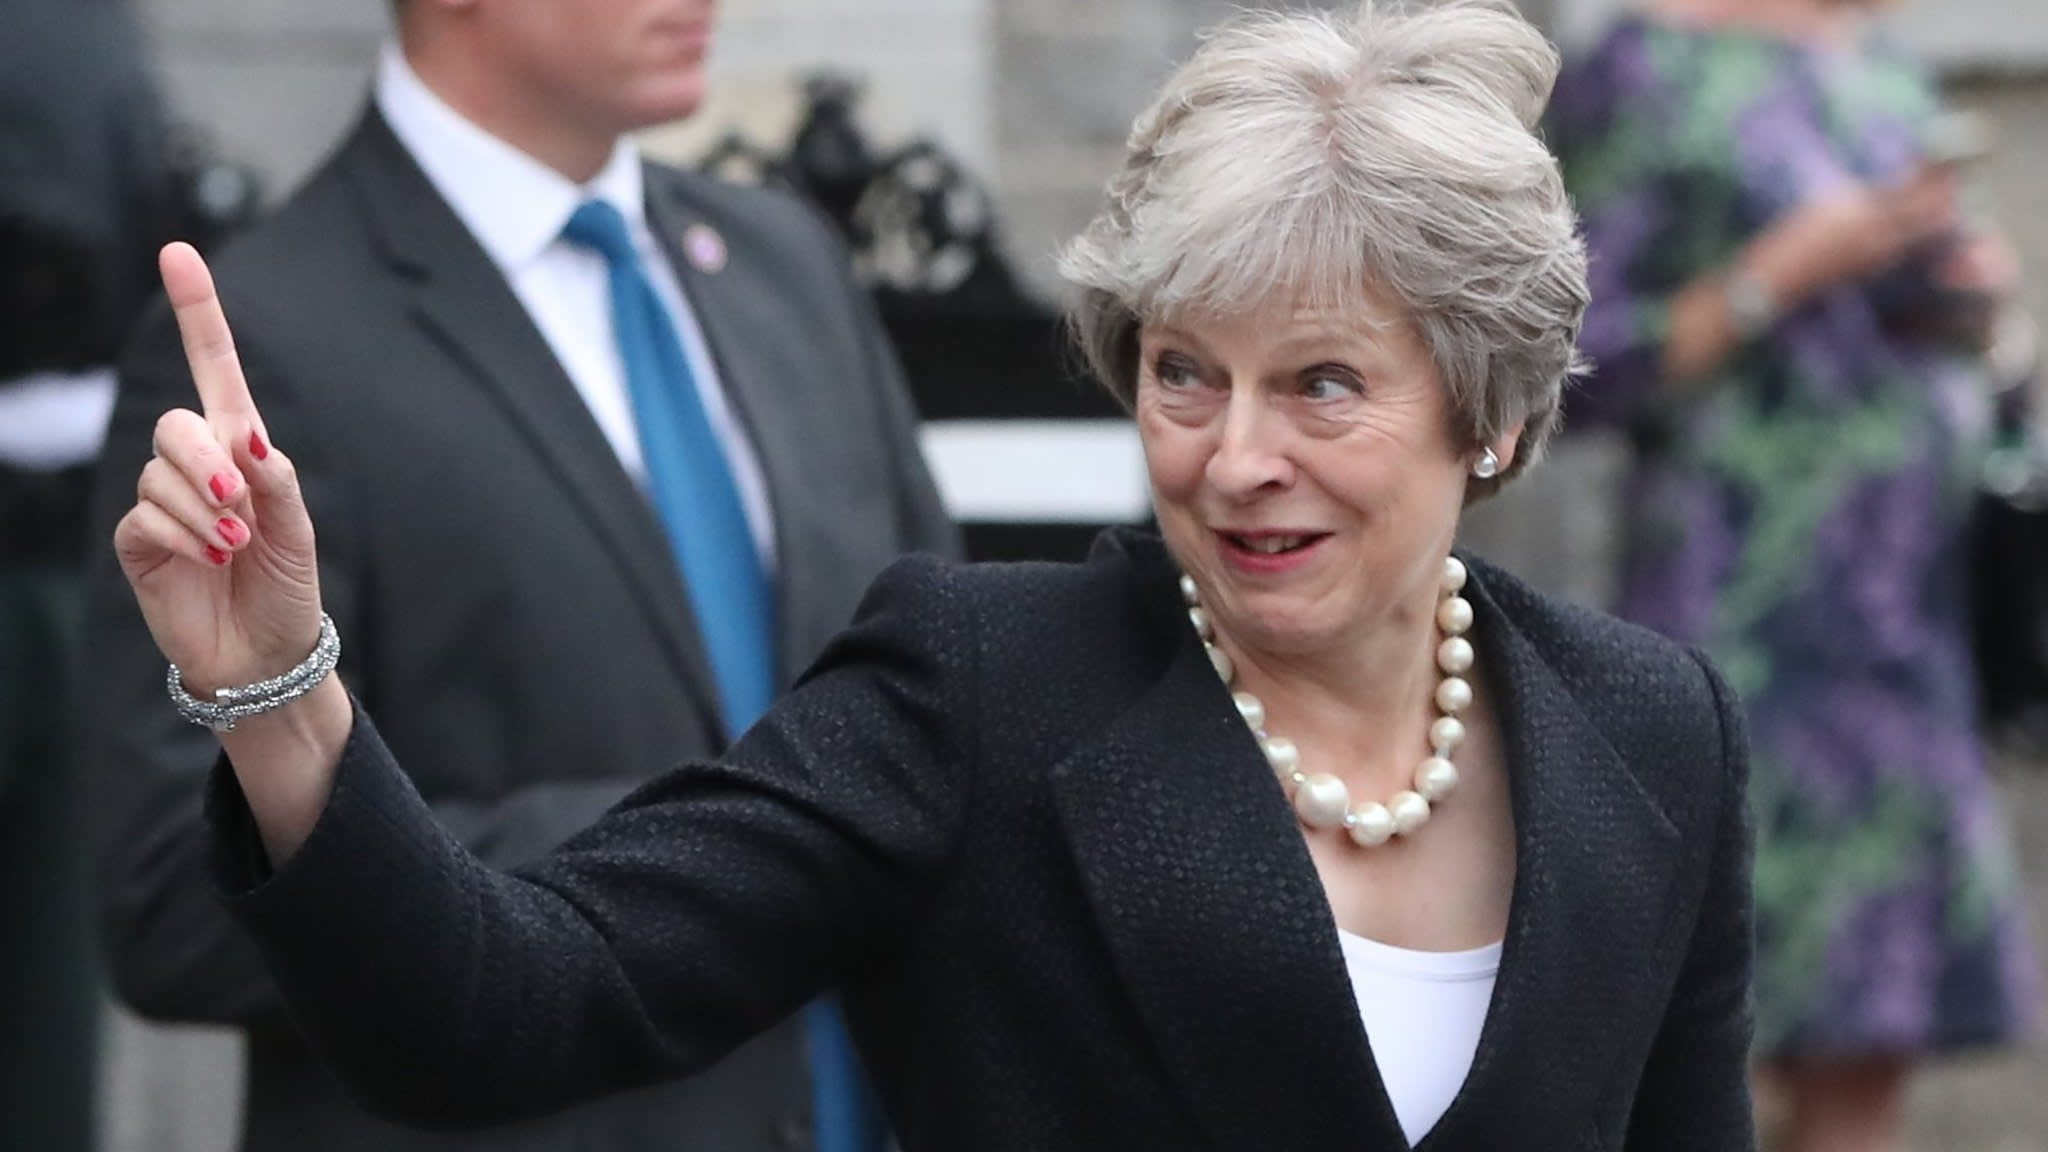 Theresa May calls on EU to 'evolve' Brexit position on Irish border issue